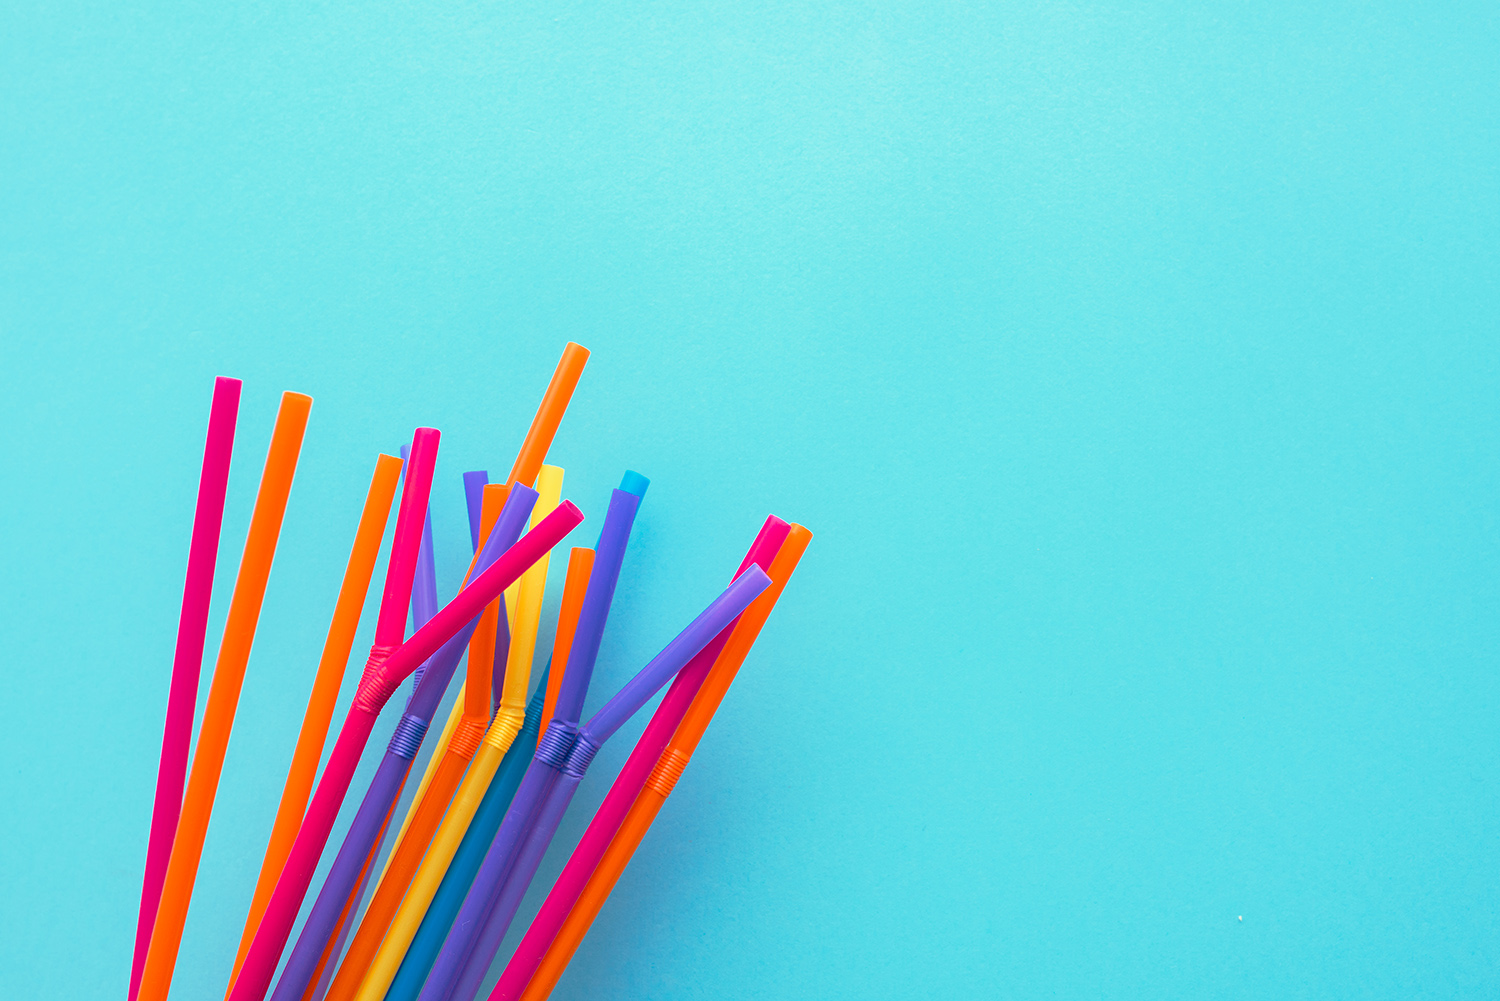 The Last Straw - If you're based elsewhere in Australia, check out The Last Straw and get involved with their awesome program. Sign up as a straw-free venue and be part of a huge collective of businesses doing good for this blue planet of ours.